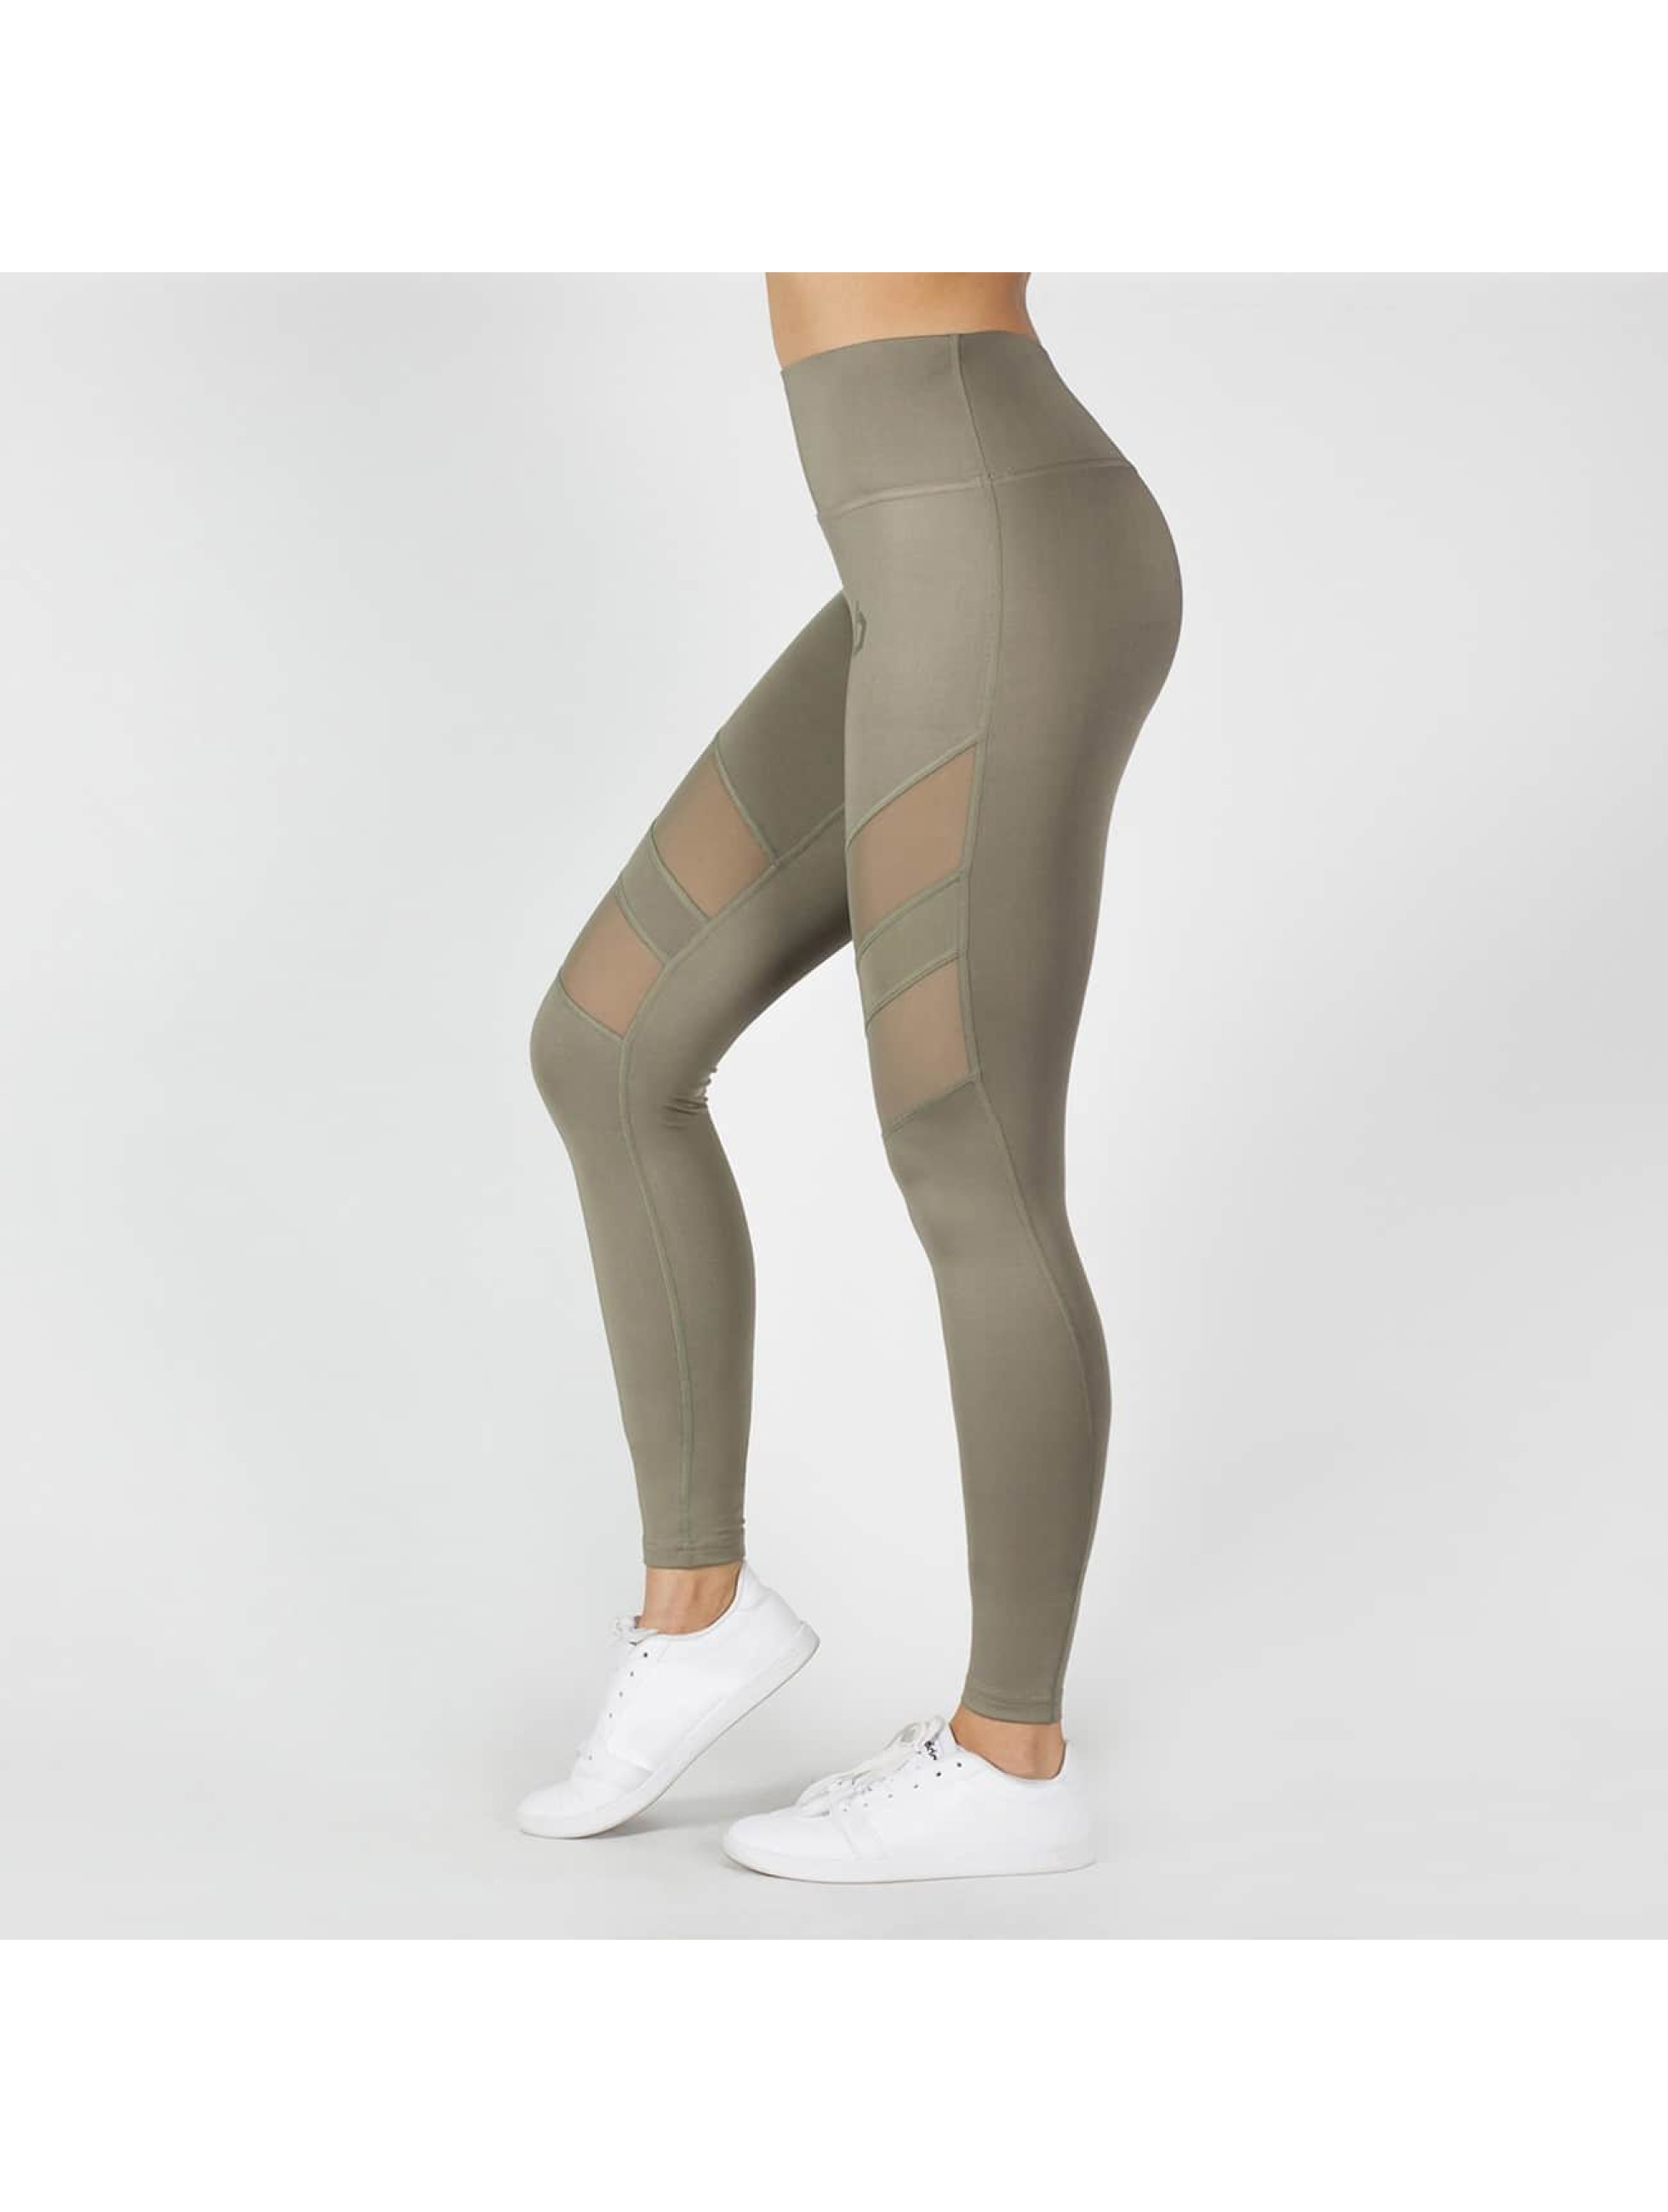 Beyond Limits Legging Super High Waist Mesh kaki